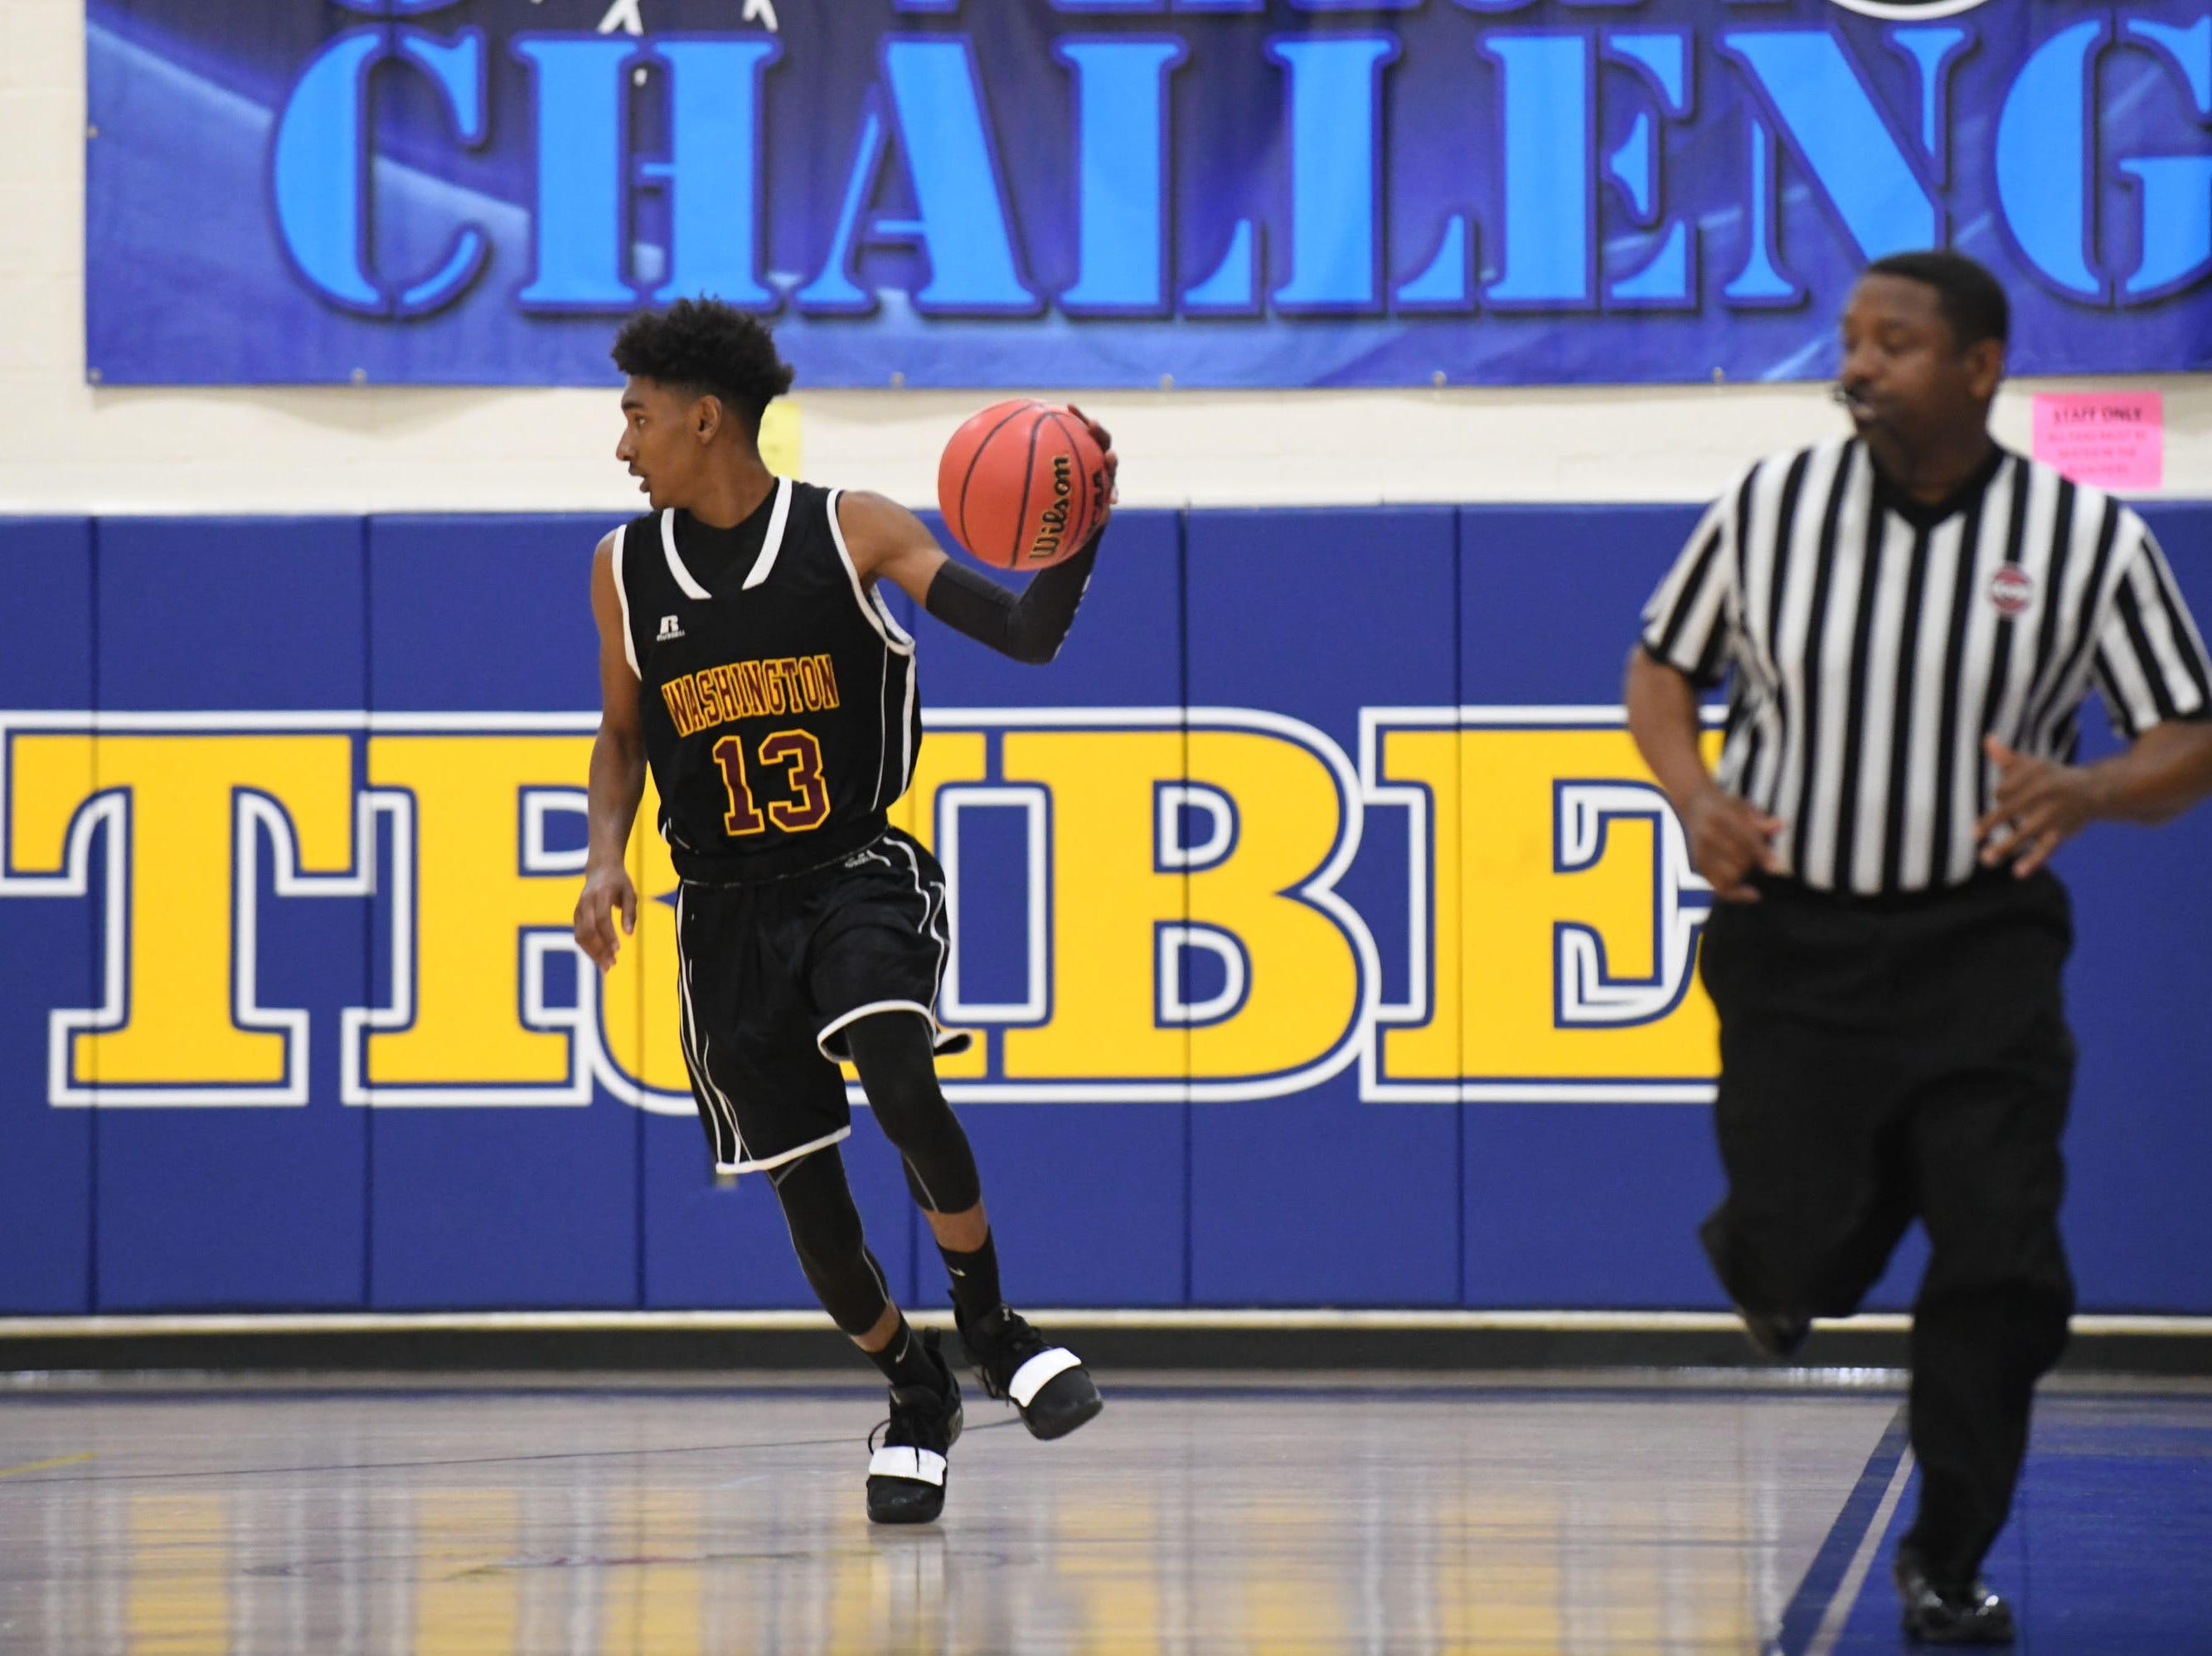 Washington's Yassin Gadda brings the ball down the court against Arcadia High School on Wednesday, Dec. 26, 2018 during the Governors Challenge in Salisbury, Md.